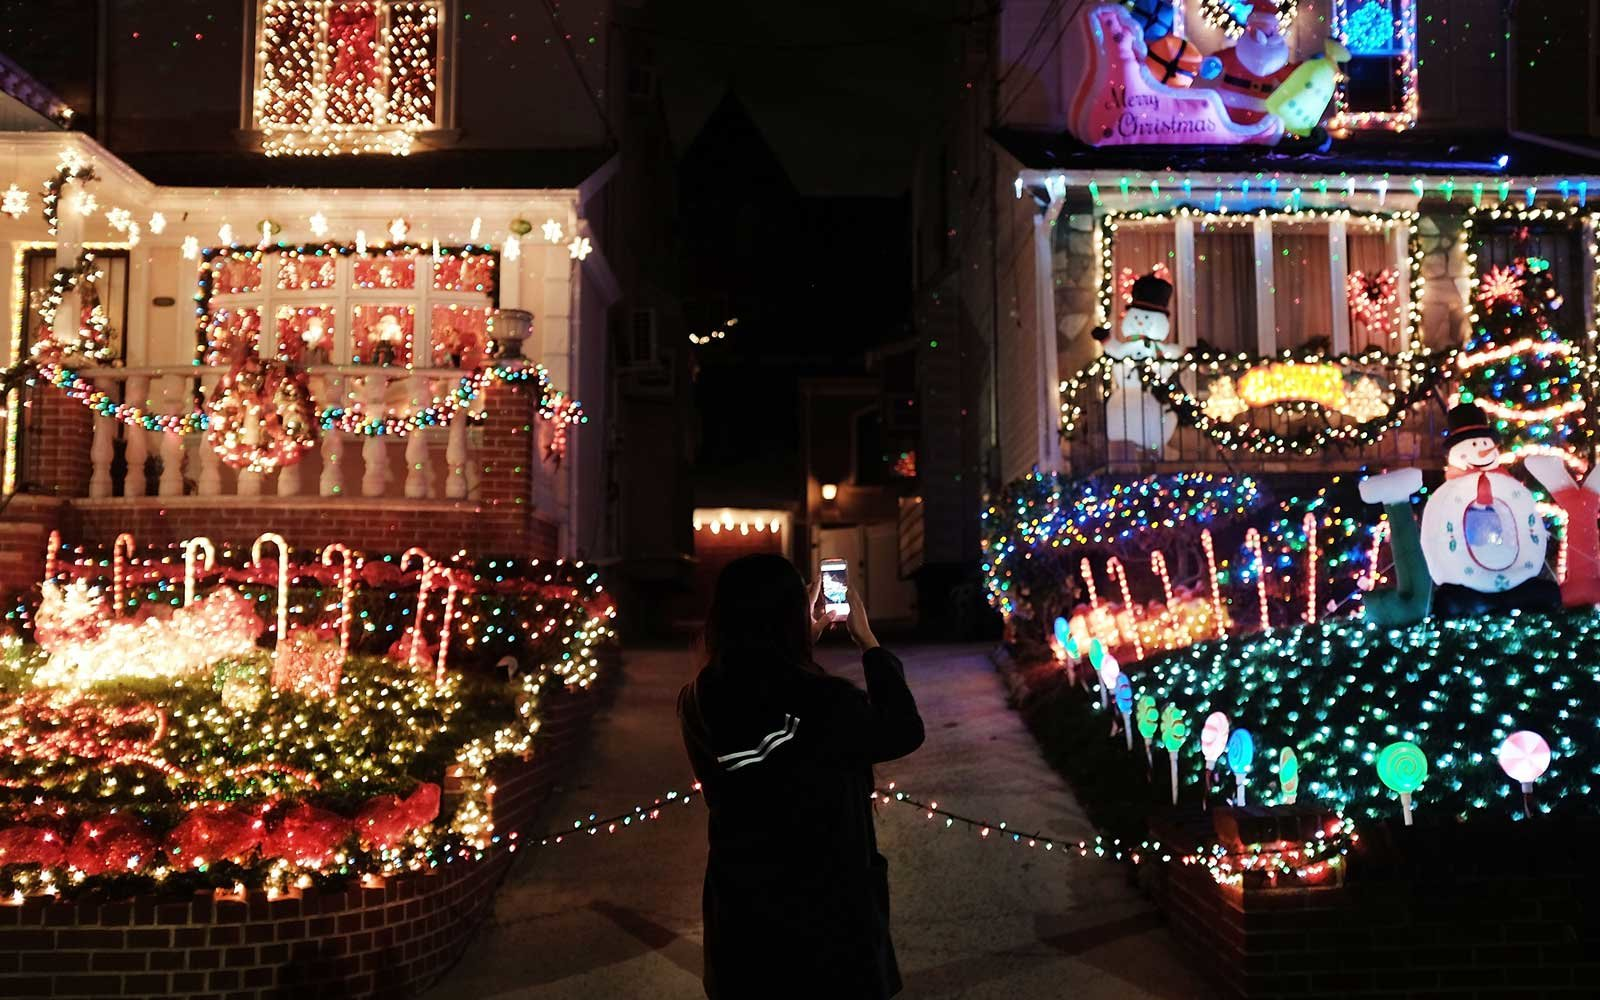 best places for christmas lights - Best Place For Christmas Decorations